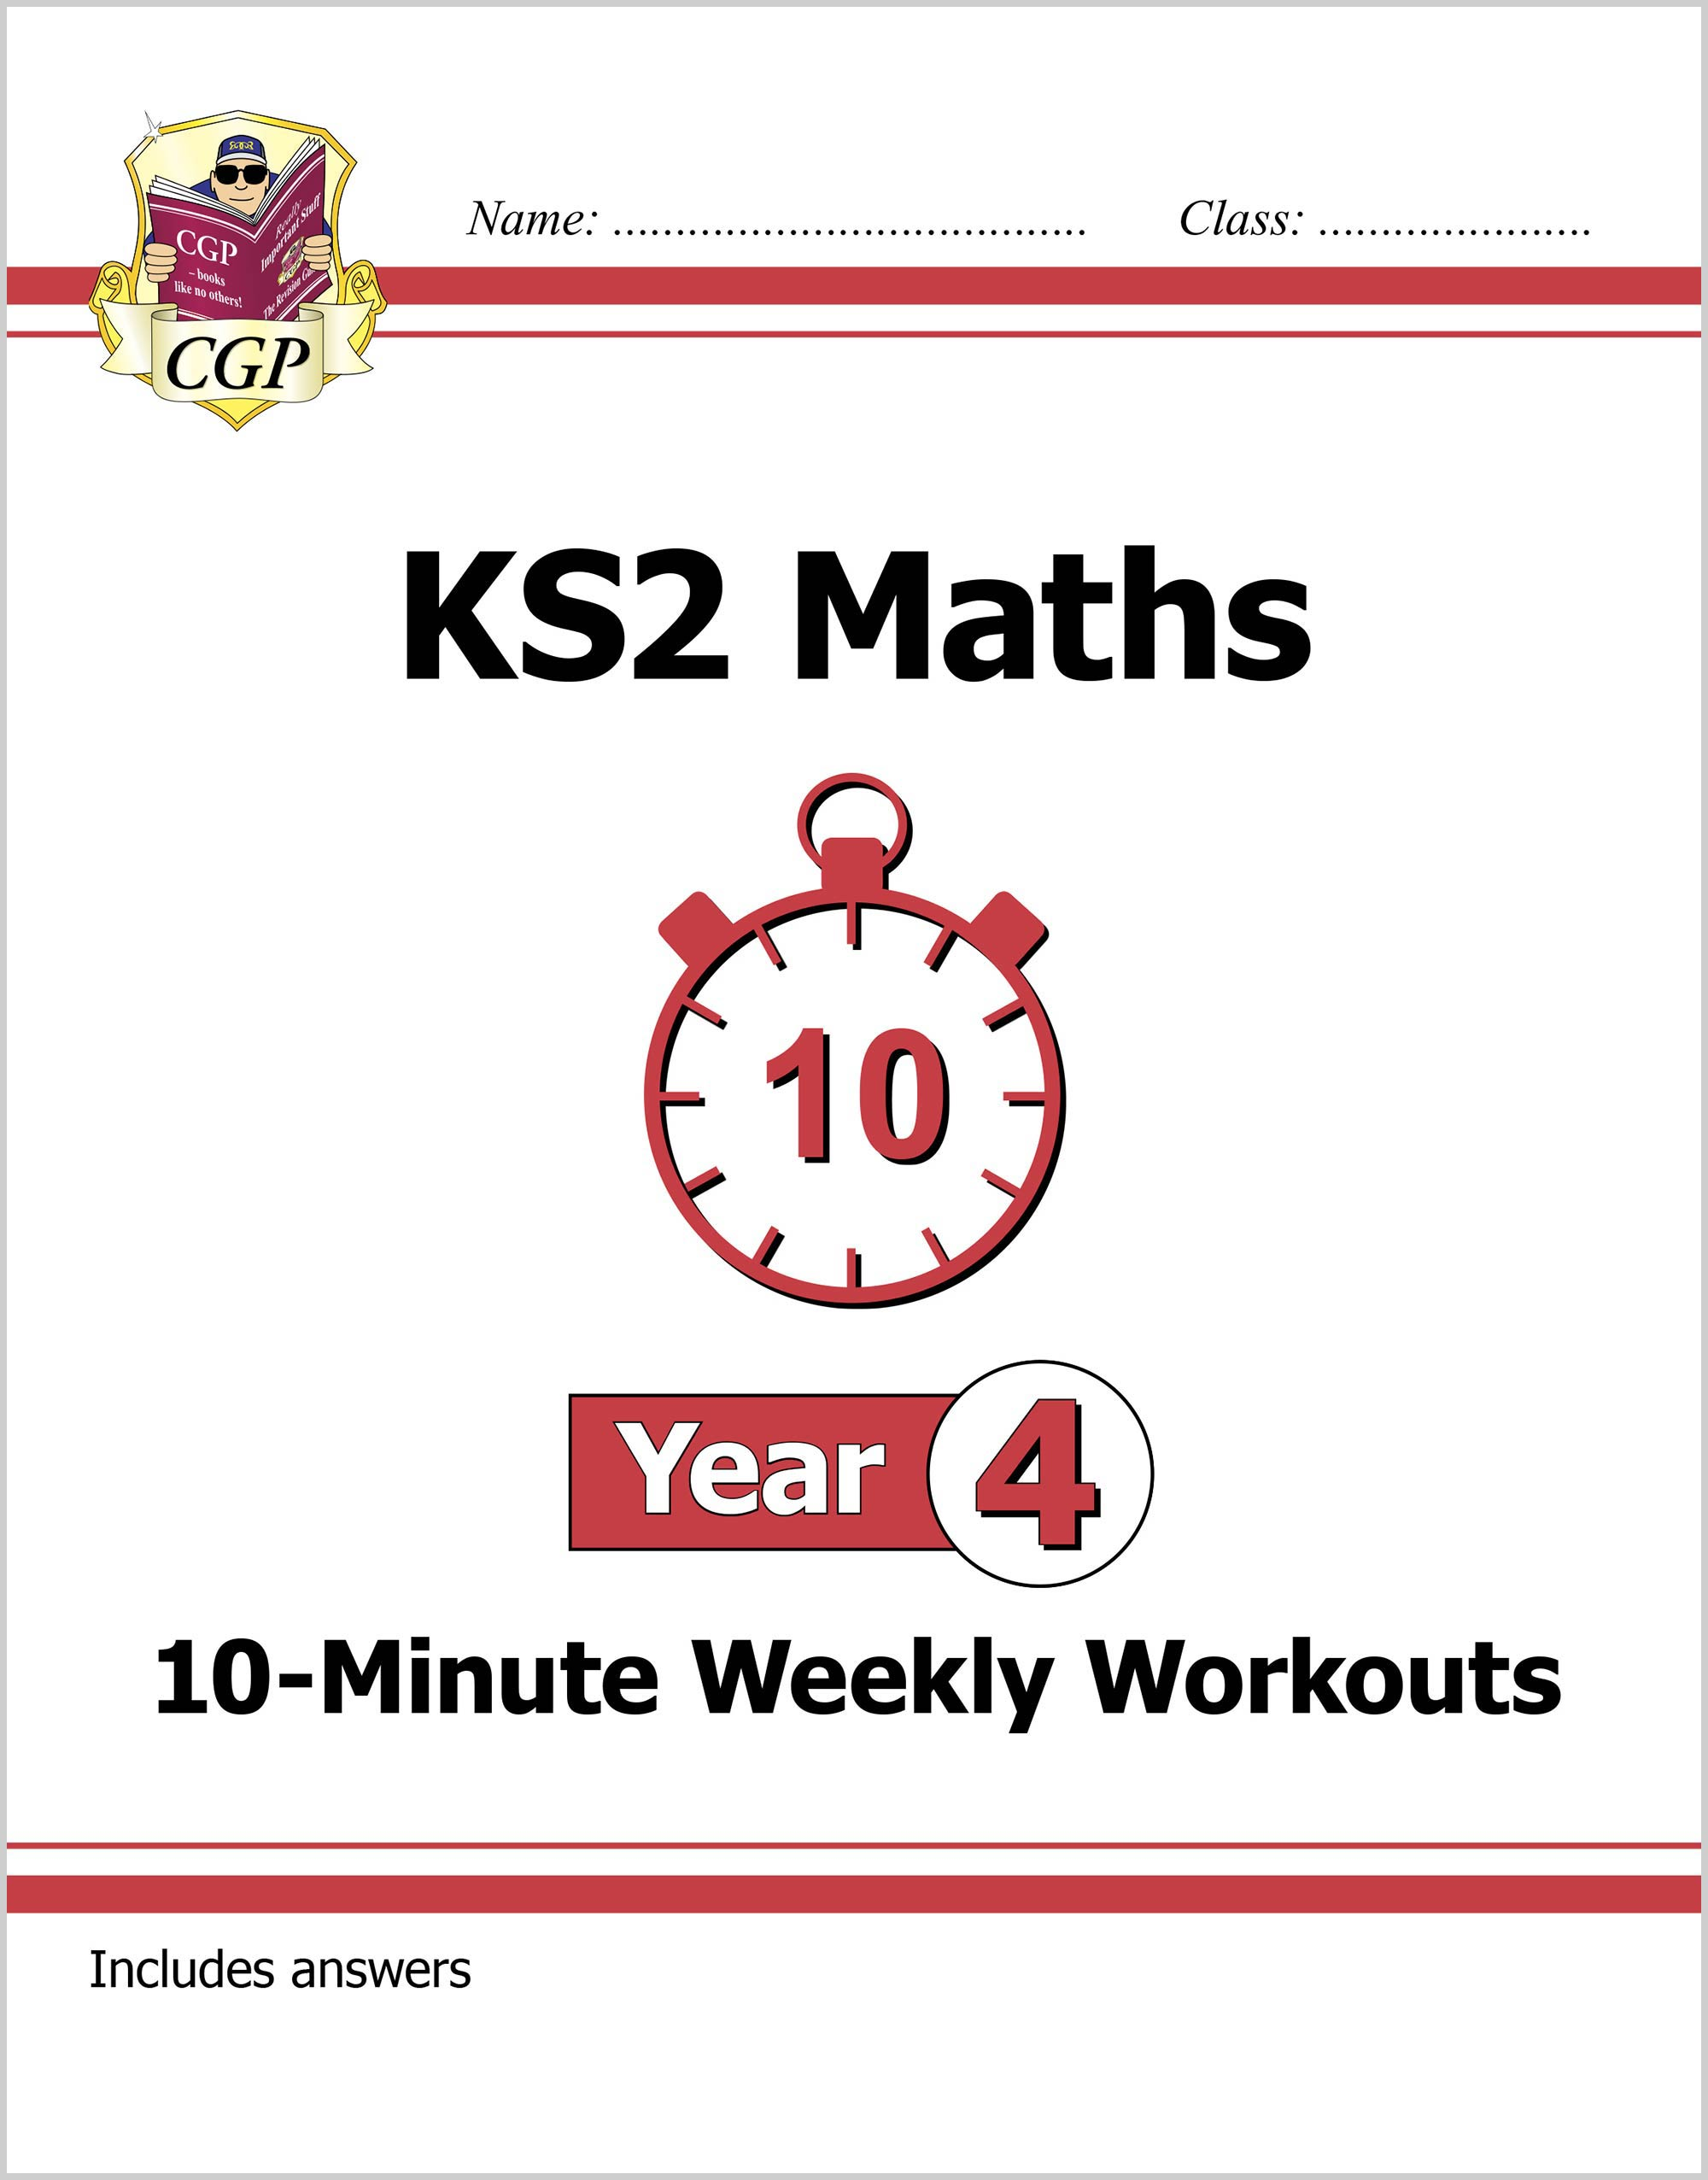 M4XW21D - New KS2 Maths 10-Minute Weekly Workouts - Year 4 Online Edition